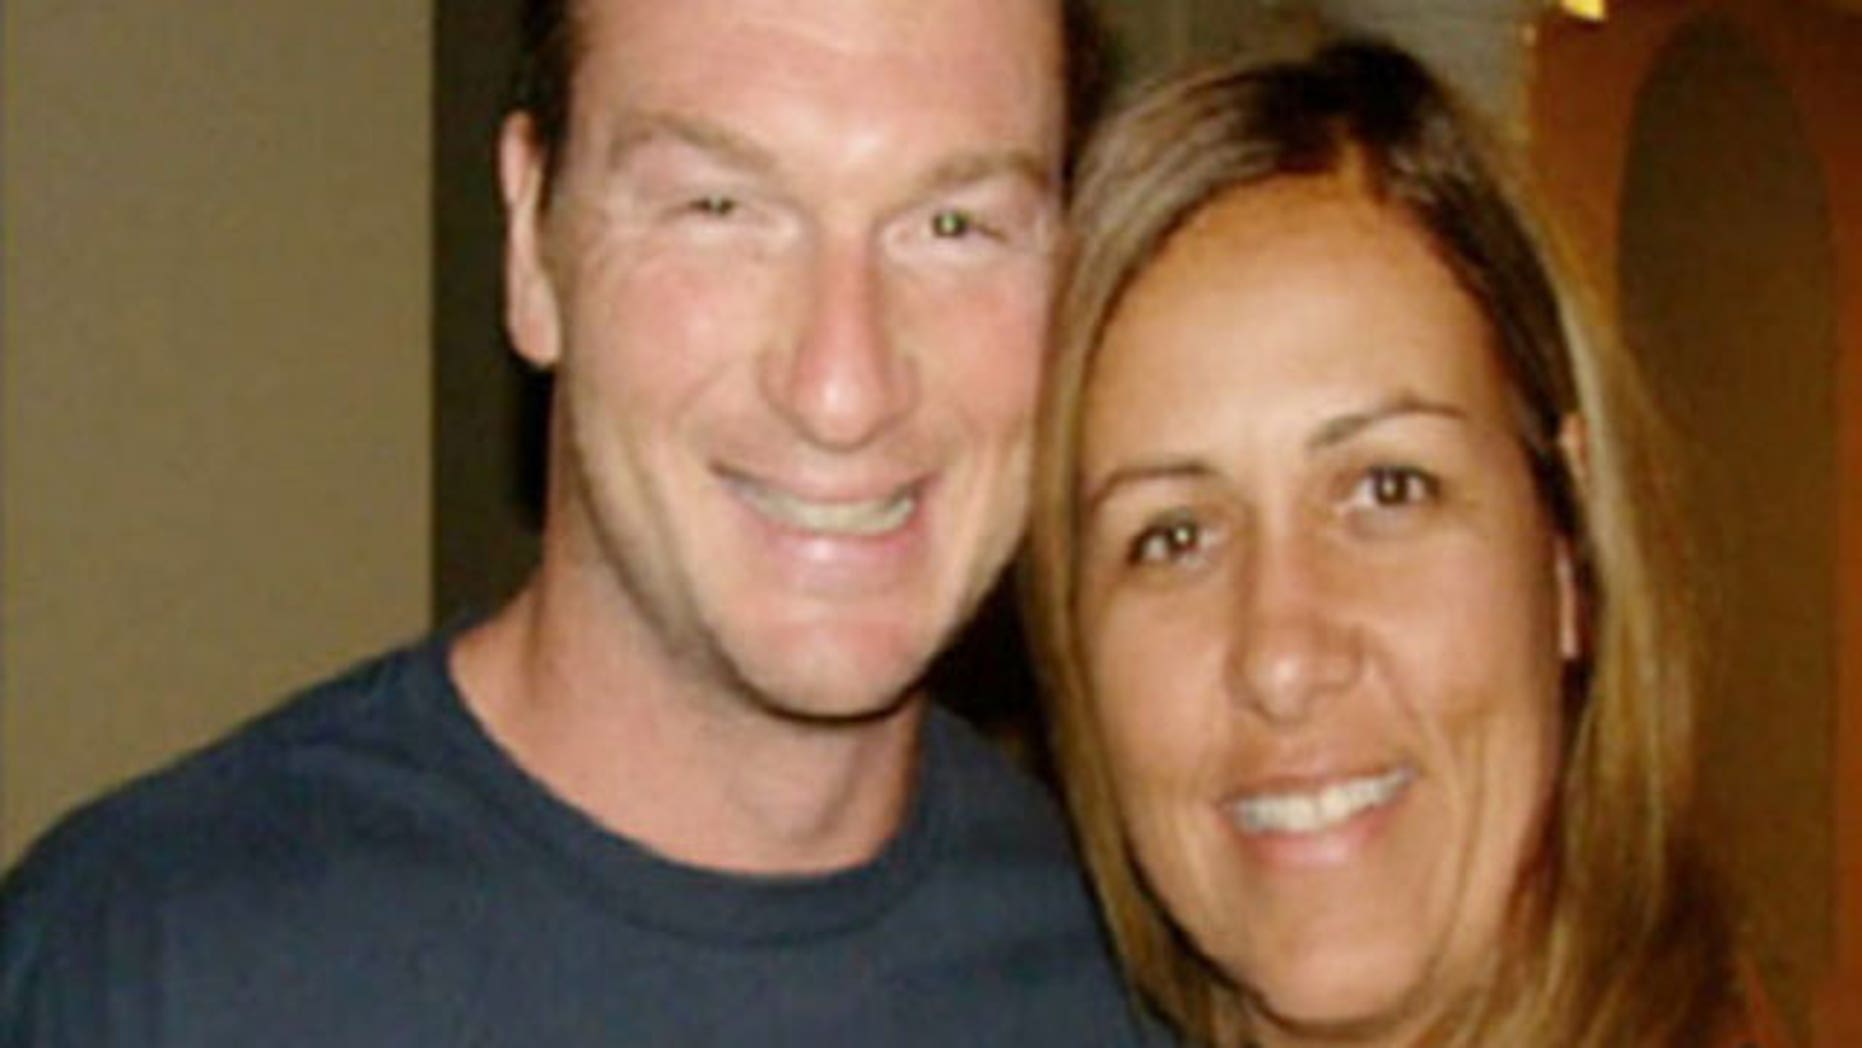 Bruce Beresford-Redman is charged in Mexico with aggravated homicide in the death of Monica Beresford-Redman